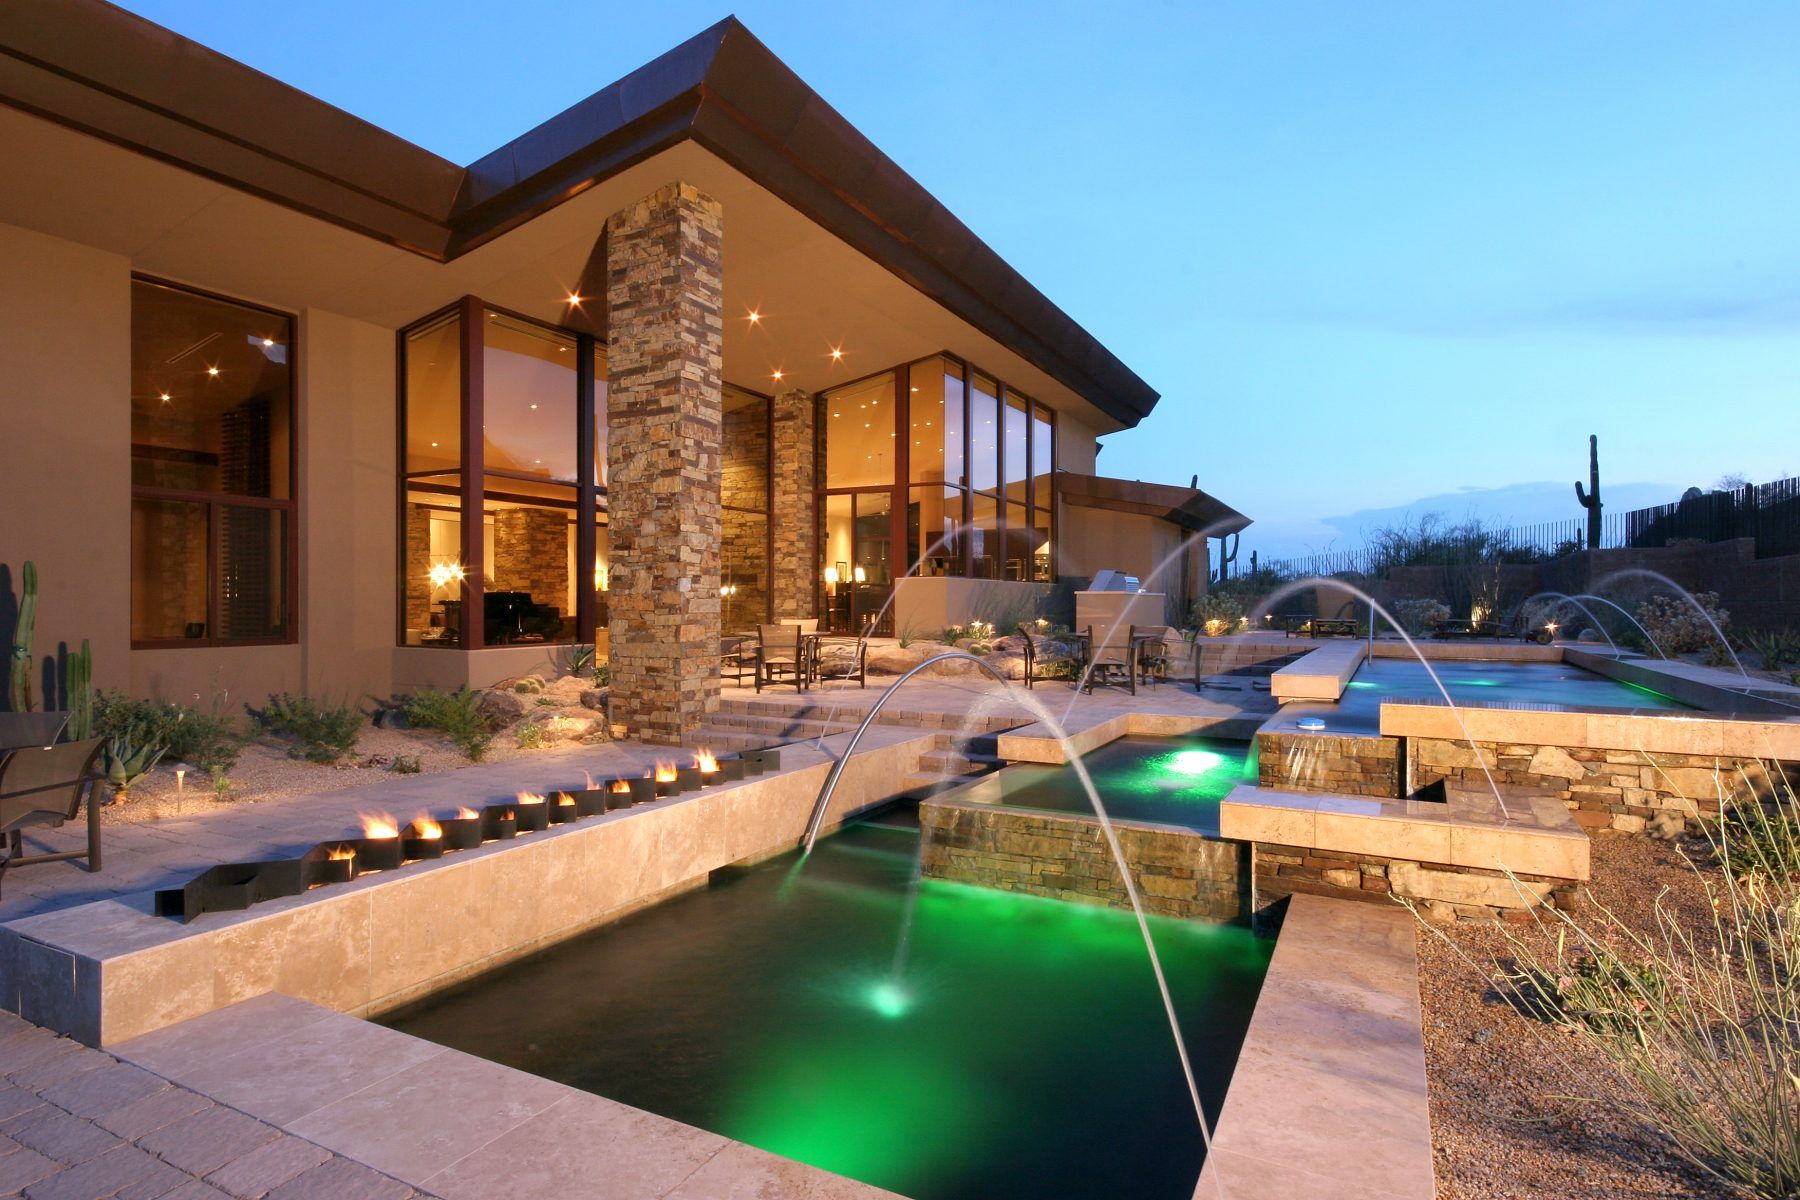 arizona golf community luxury homes the omalley group real estate